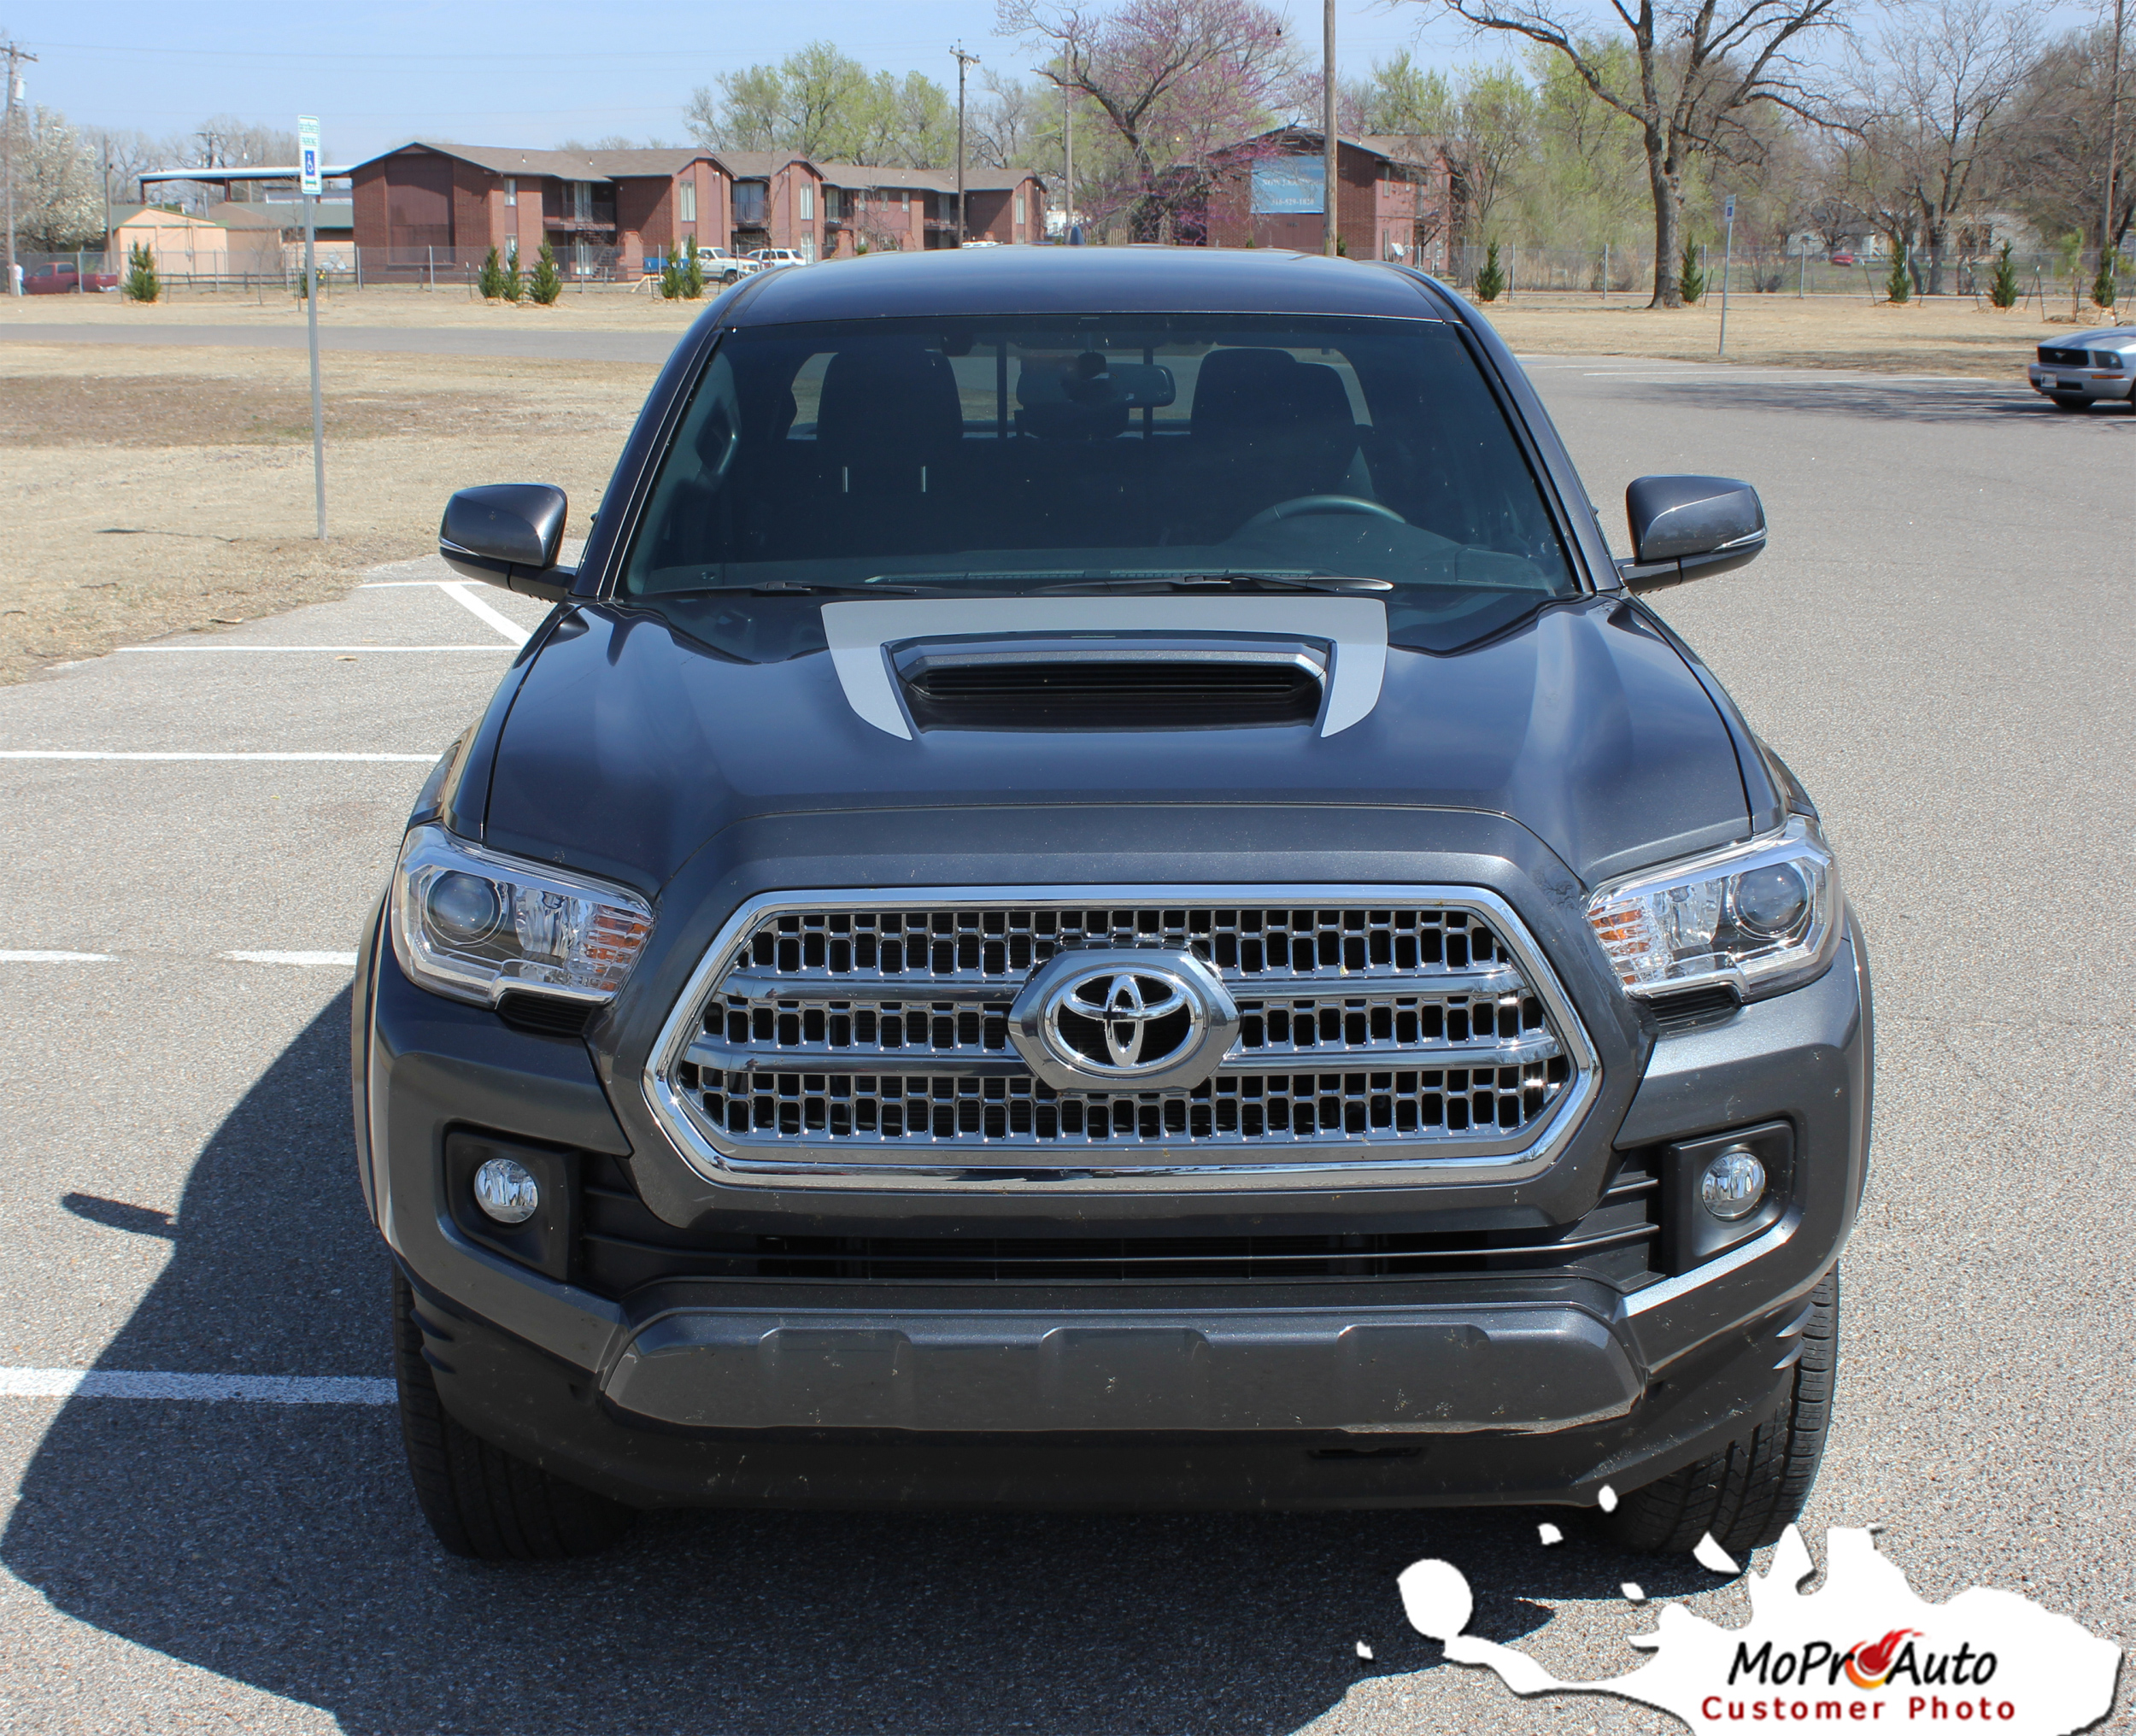 SPORT HOOD - Toyota Tacoma Truck TRD Sport Pro 3M 1080 Vinyl Graphics, Stripes and Decals Package by MoProAuto Pro Design Series